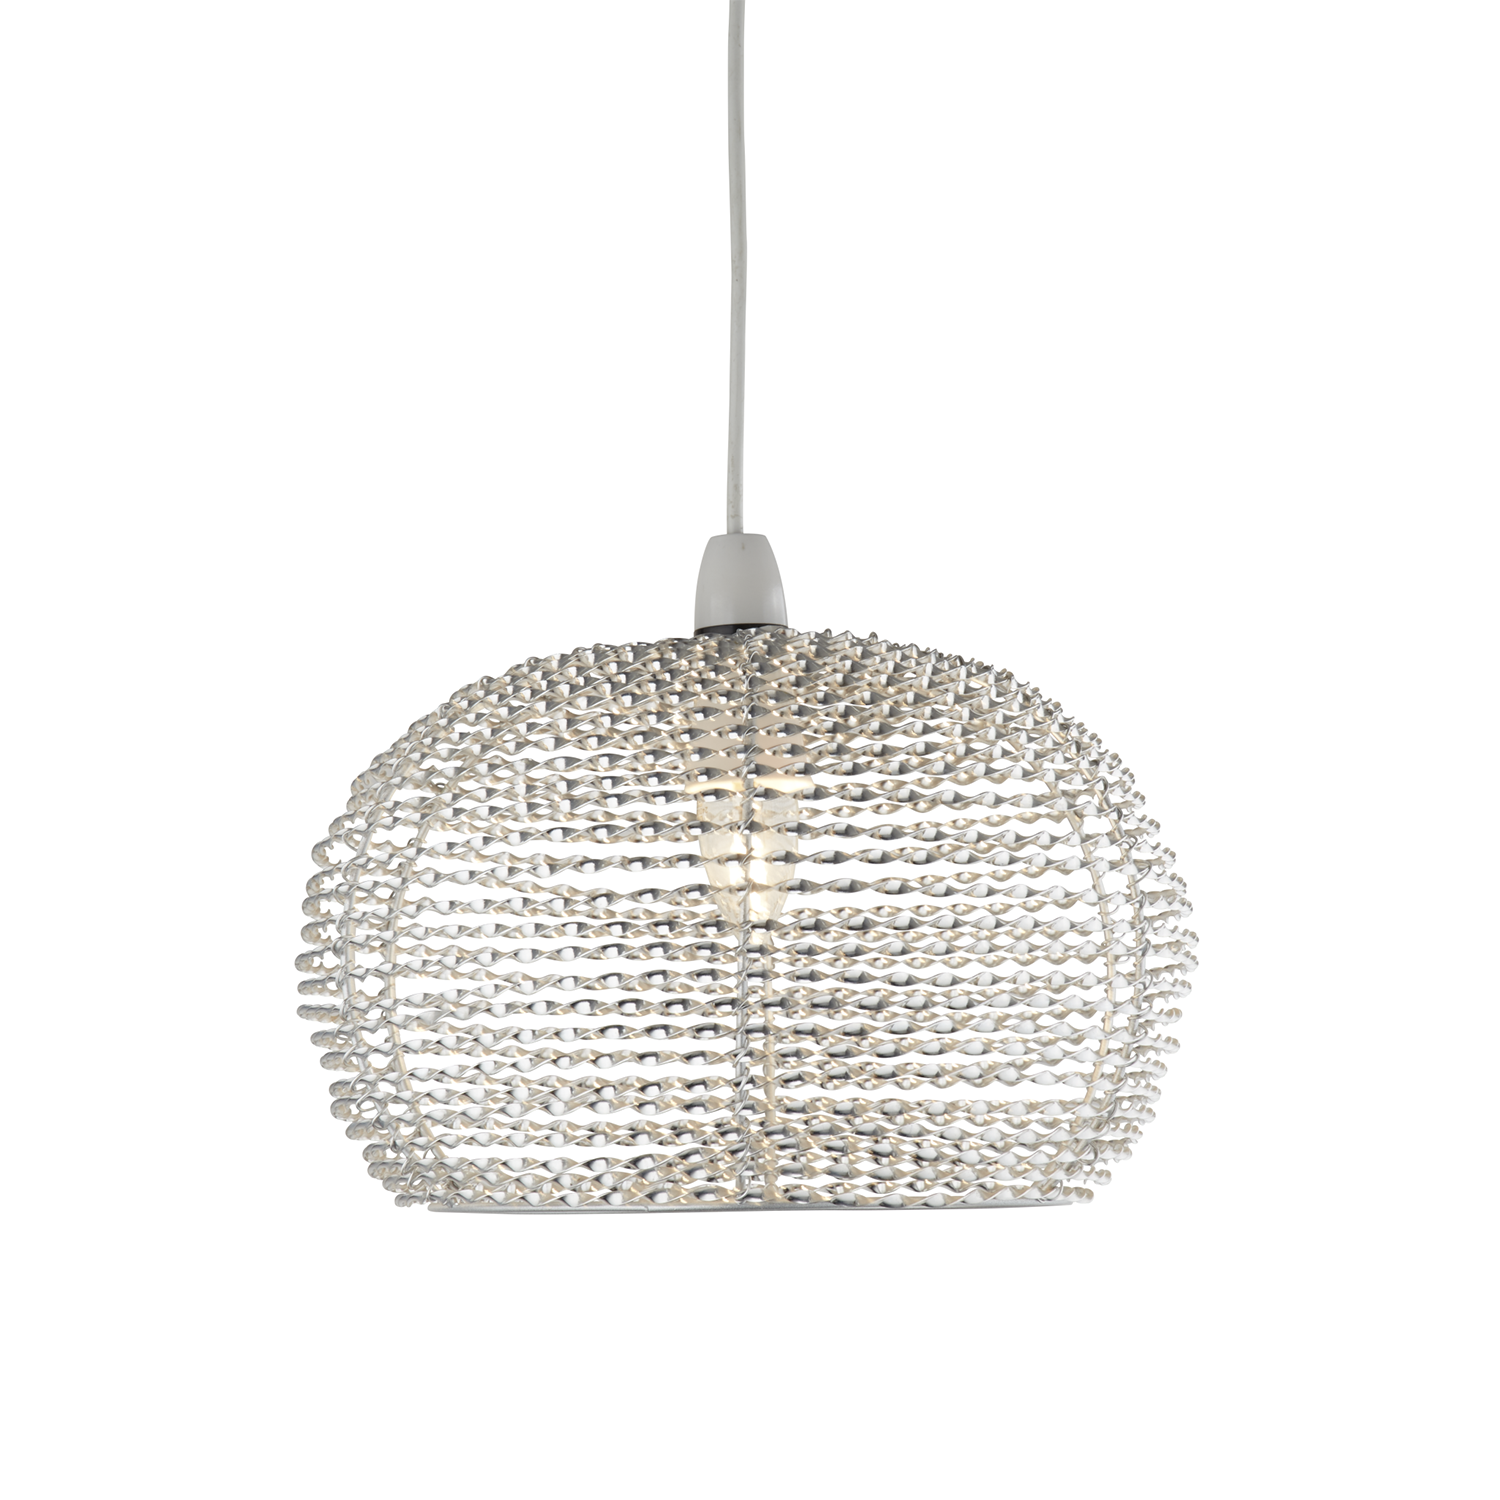 Image of Casa Large Ceiling Lamp Shade, Silver